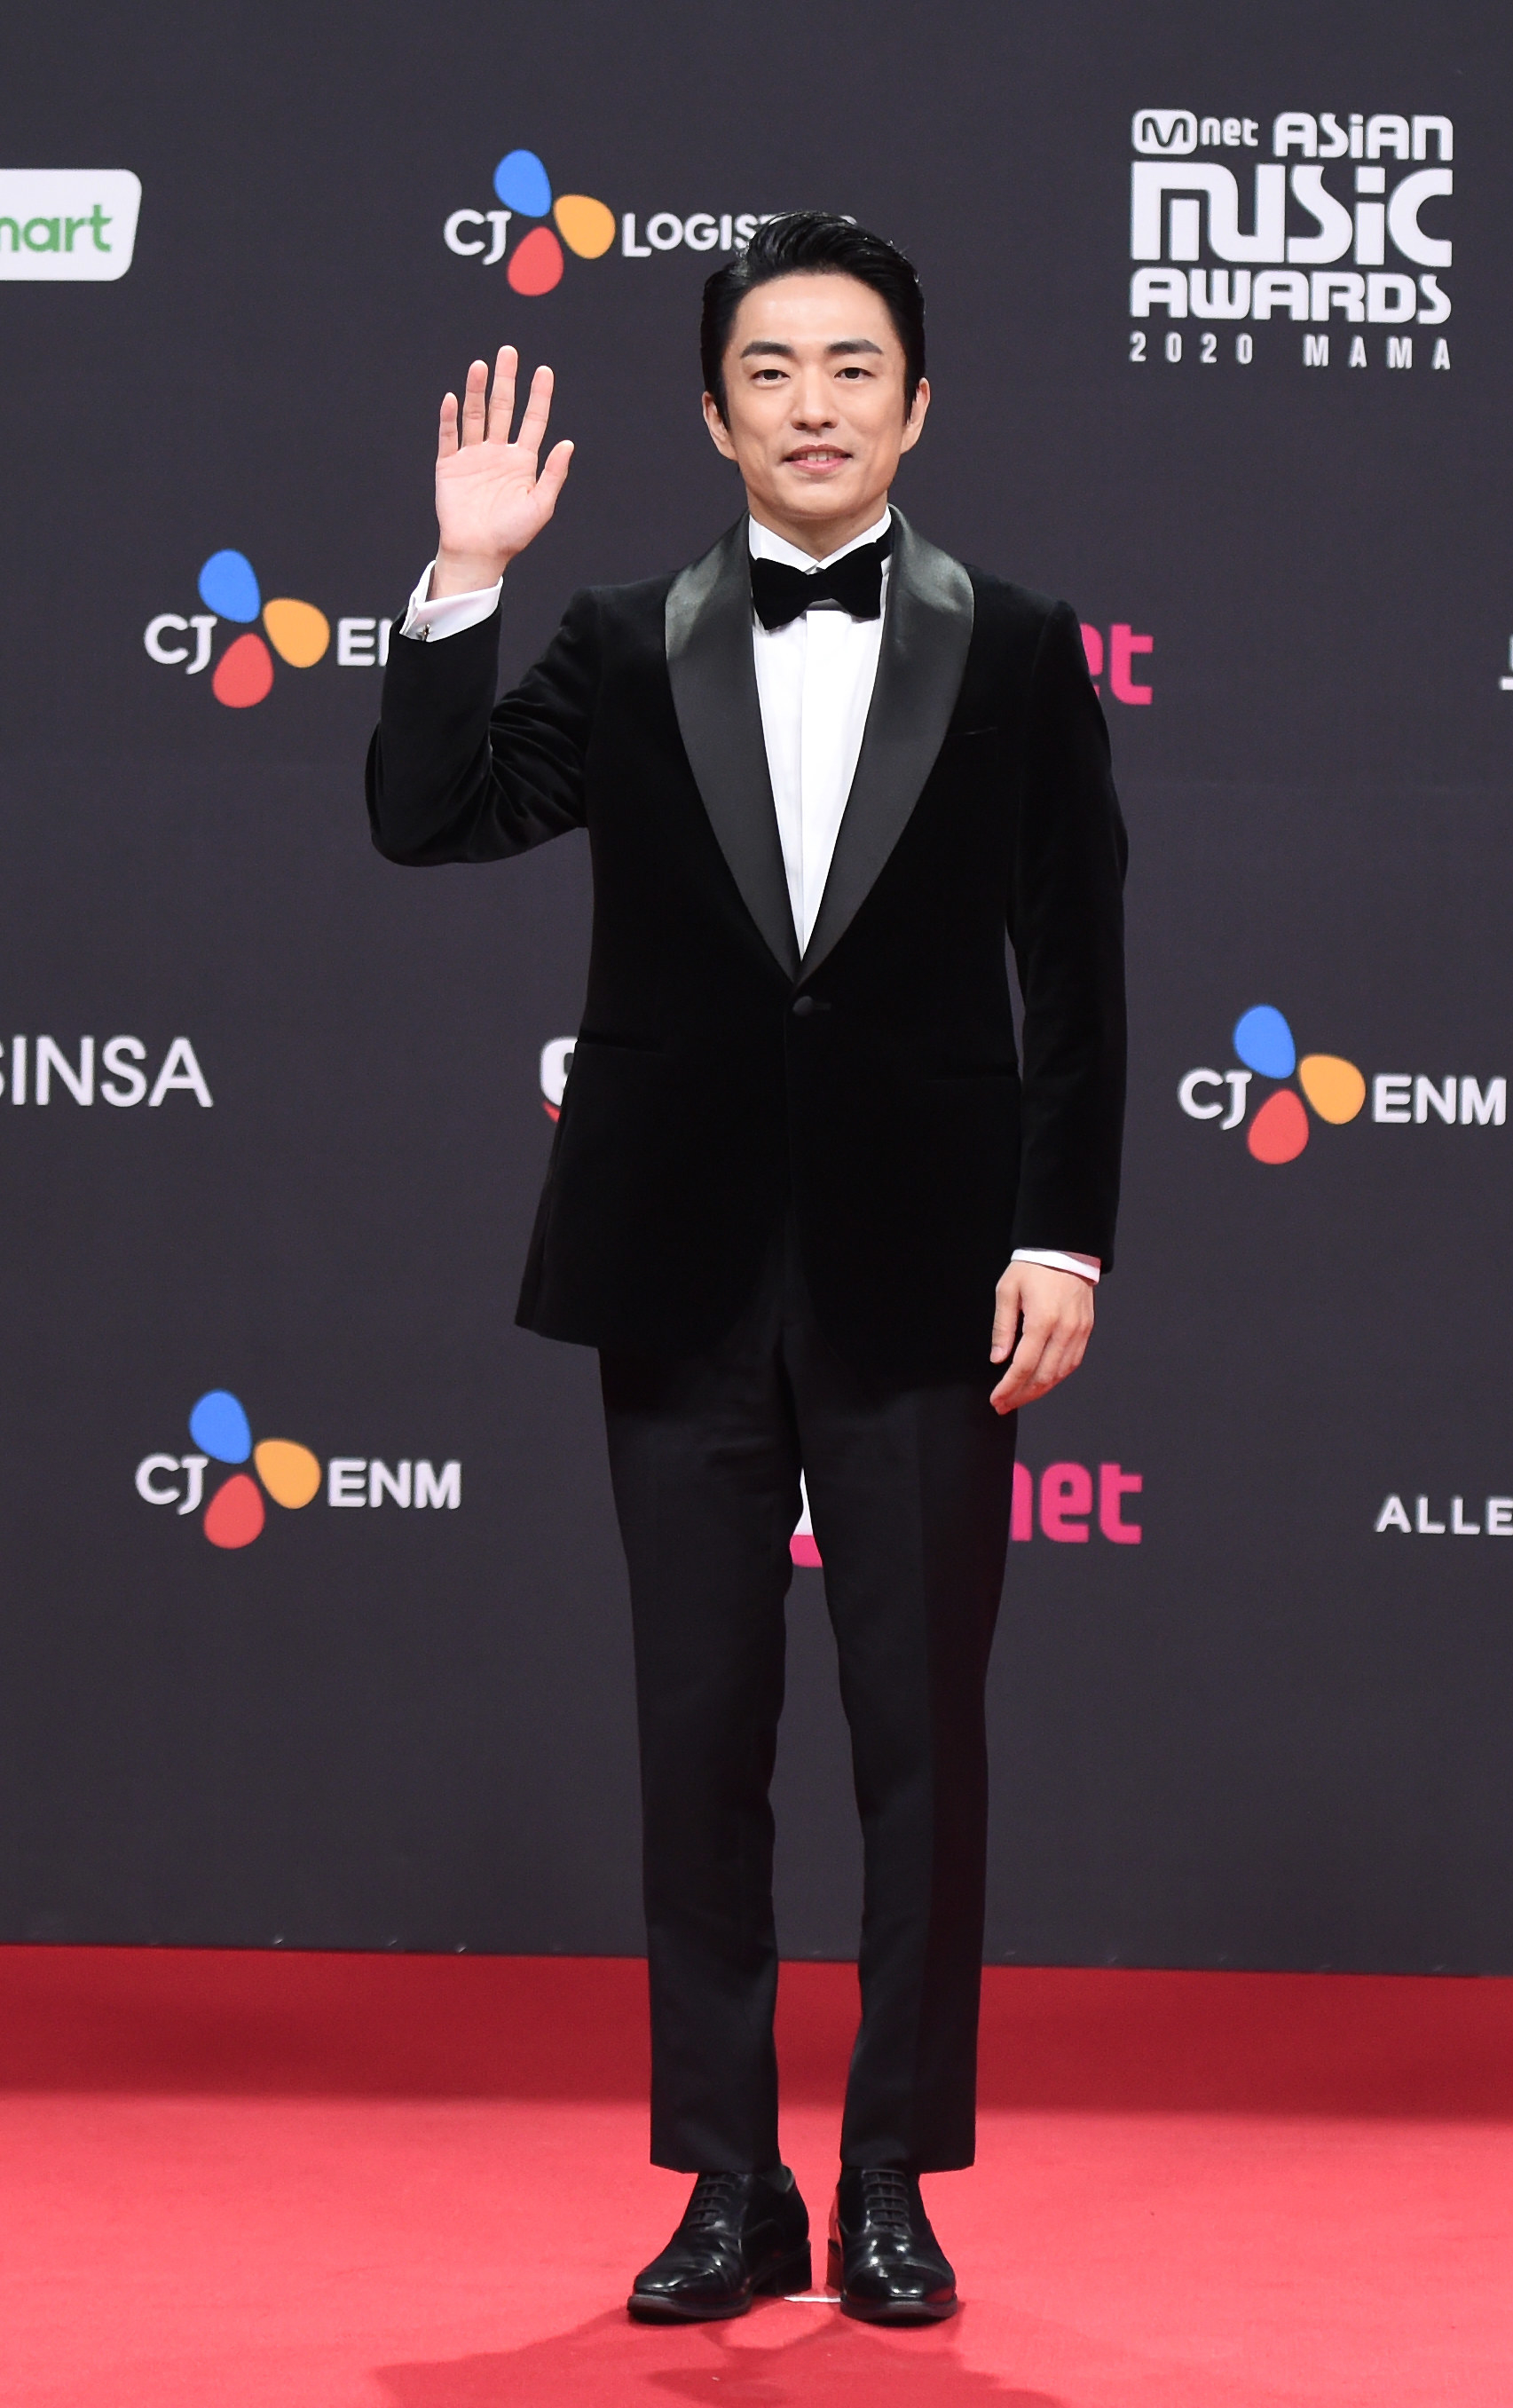 Jung Moon Sung wears a suit and bowtie at the 2020 Mnet Asian Music Awards